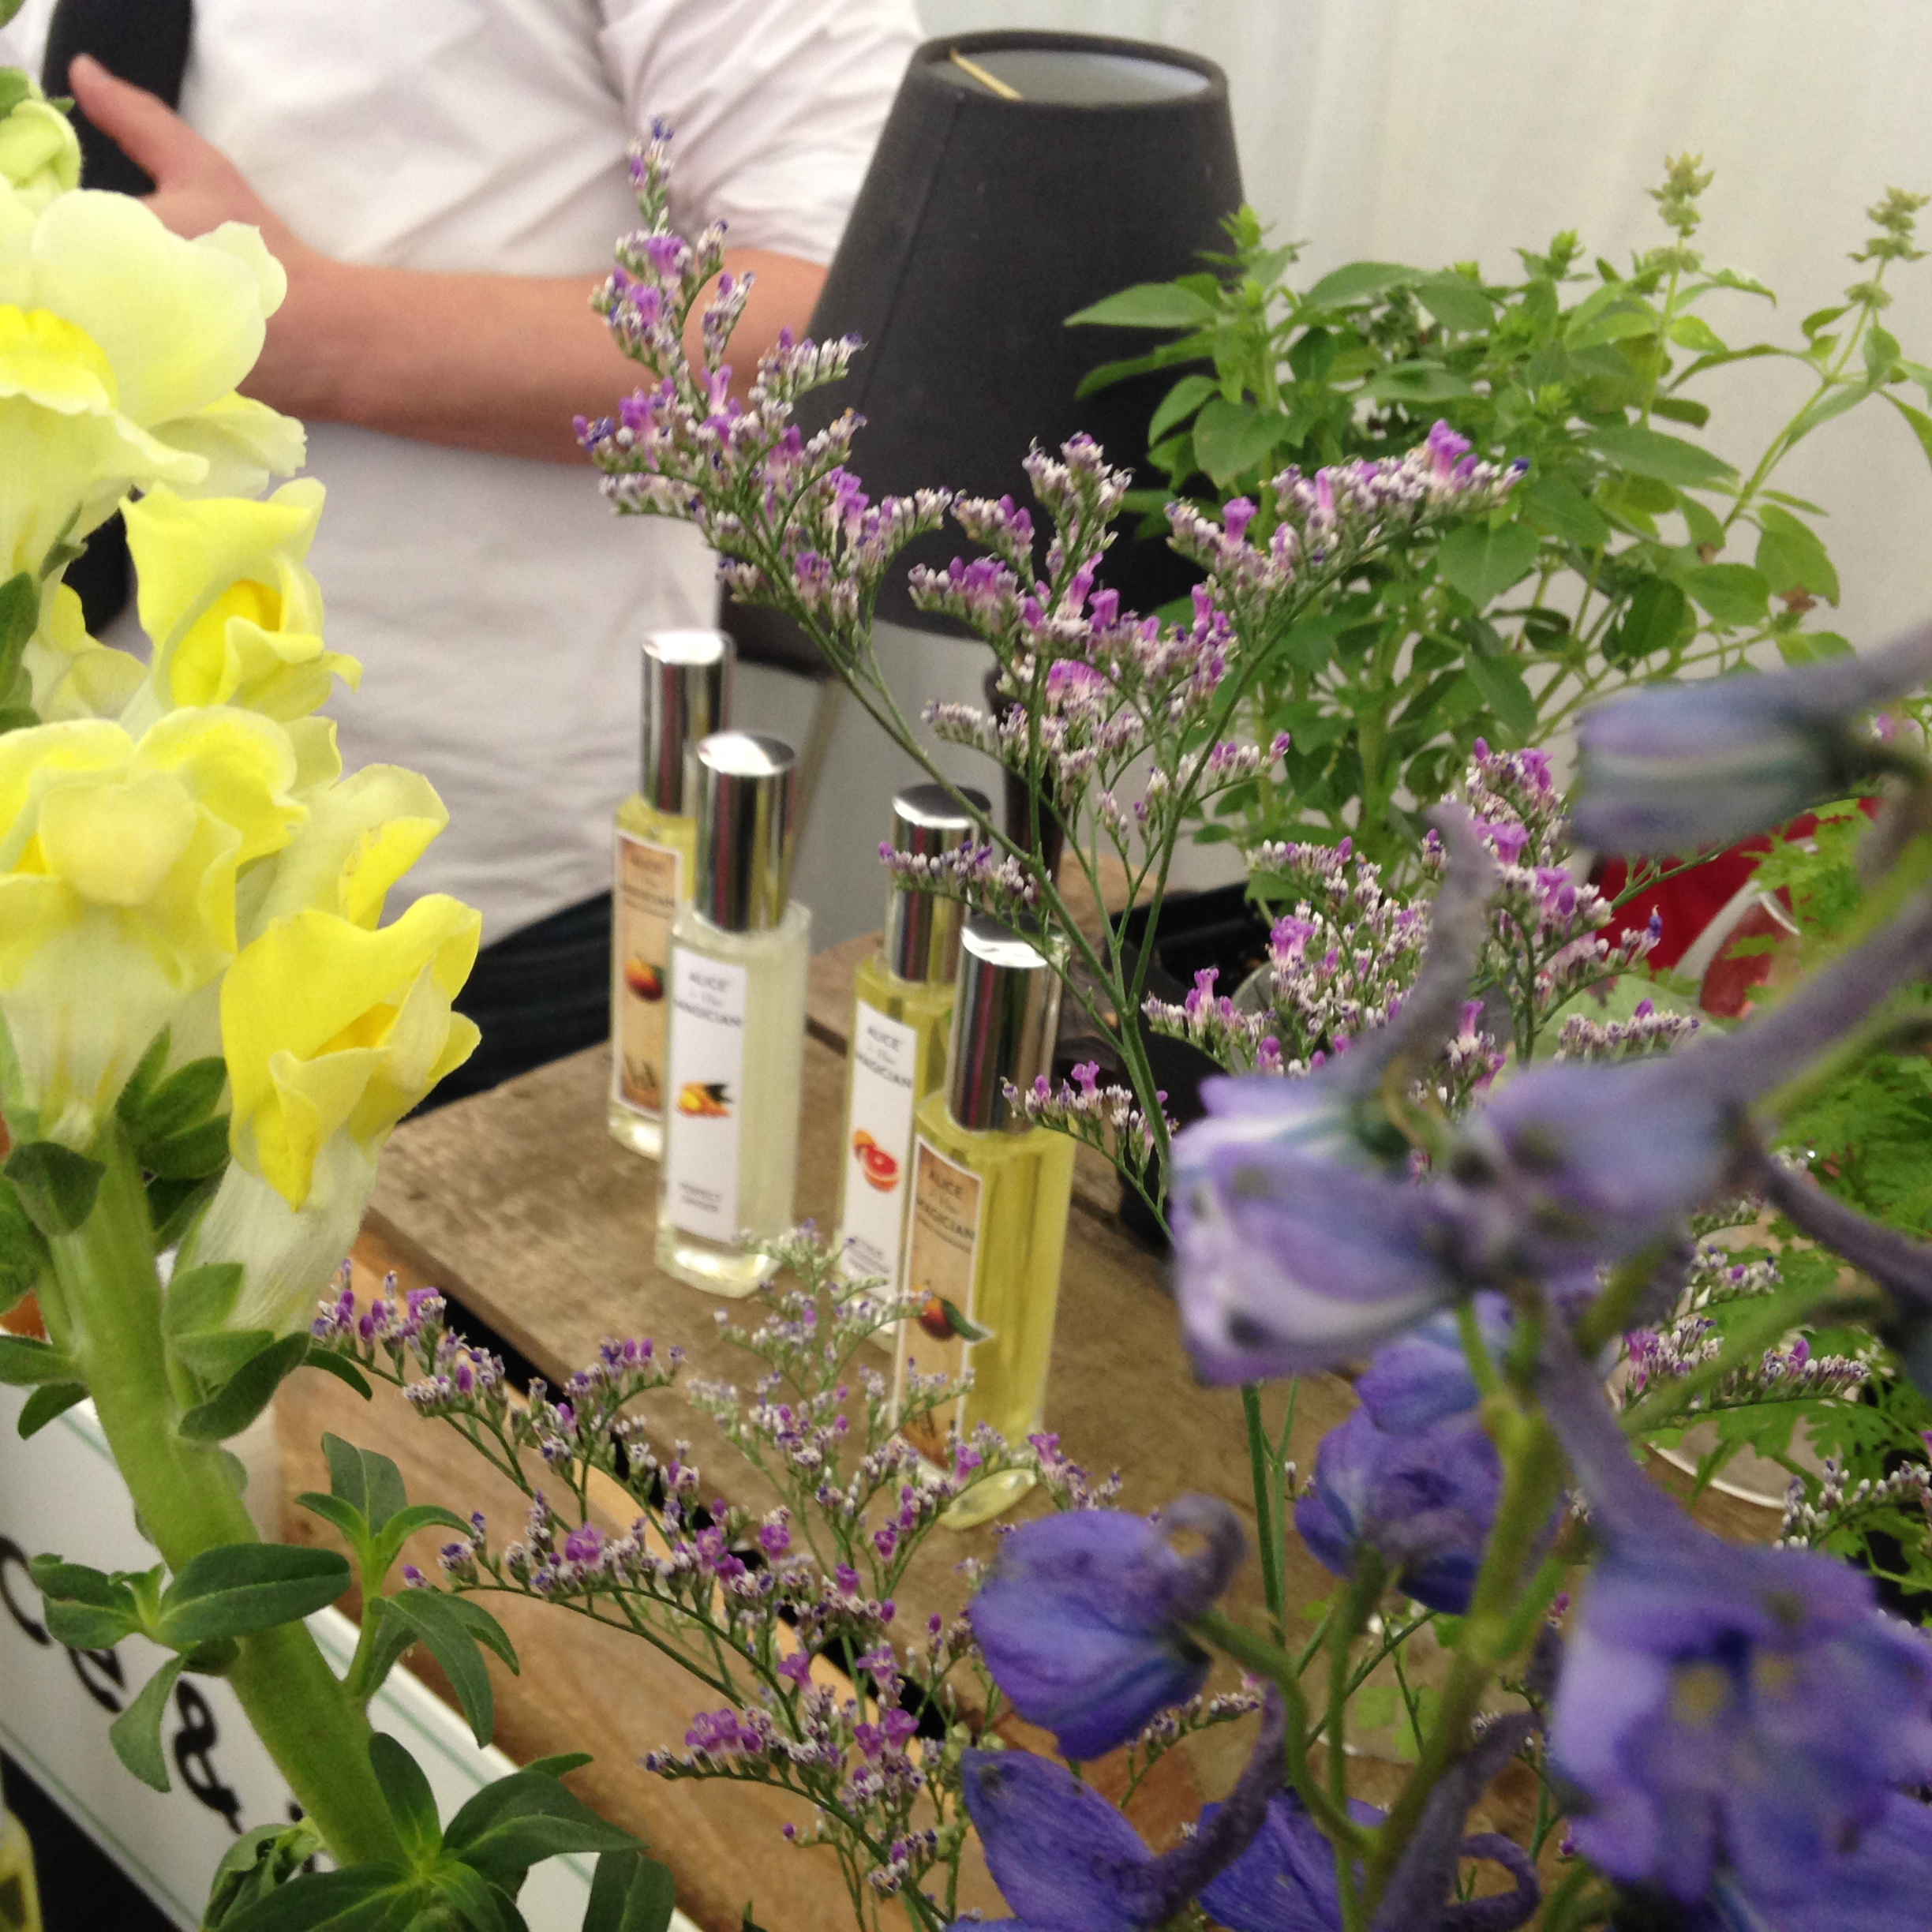 local herbs and fresh flowers highlight our display and our vision for a farm-to-bottle fragrance.